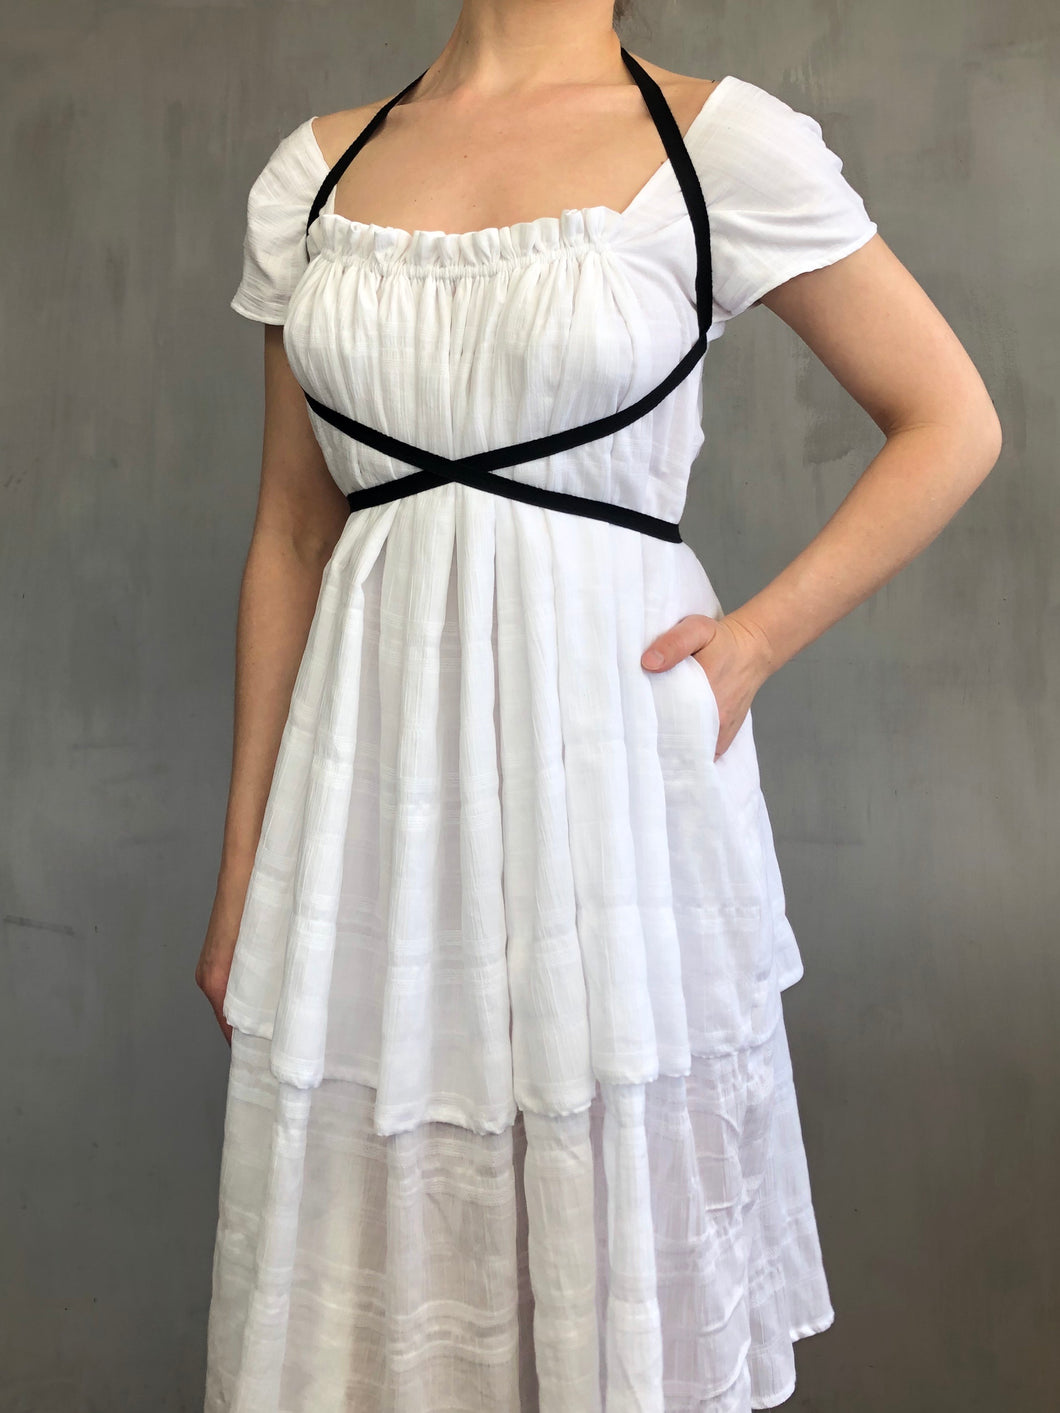 Spring 2021: Cap Sleeve Day Dress in White Cotton